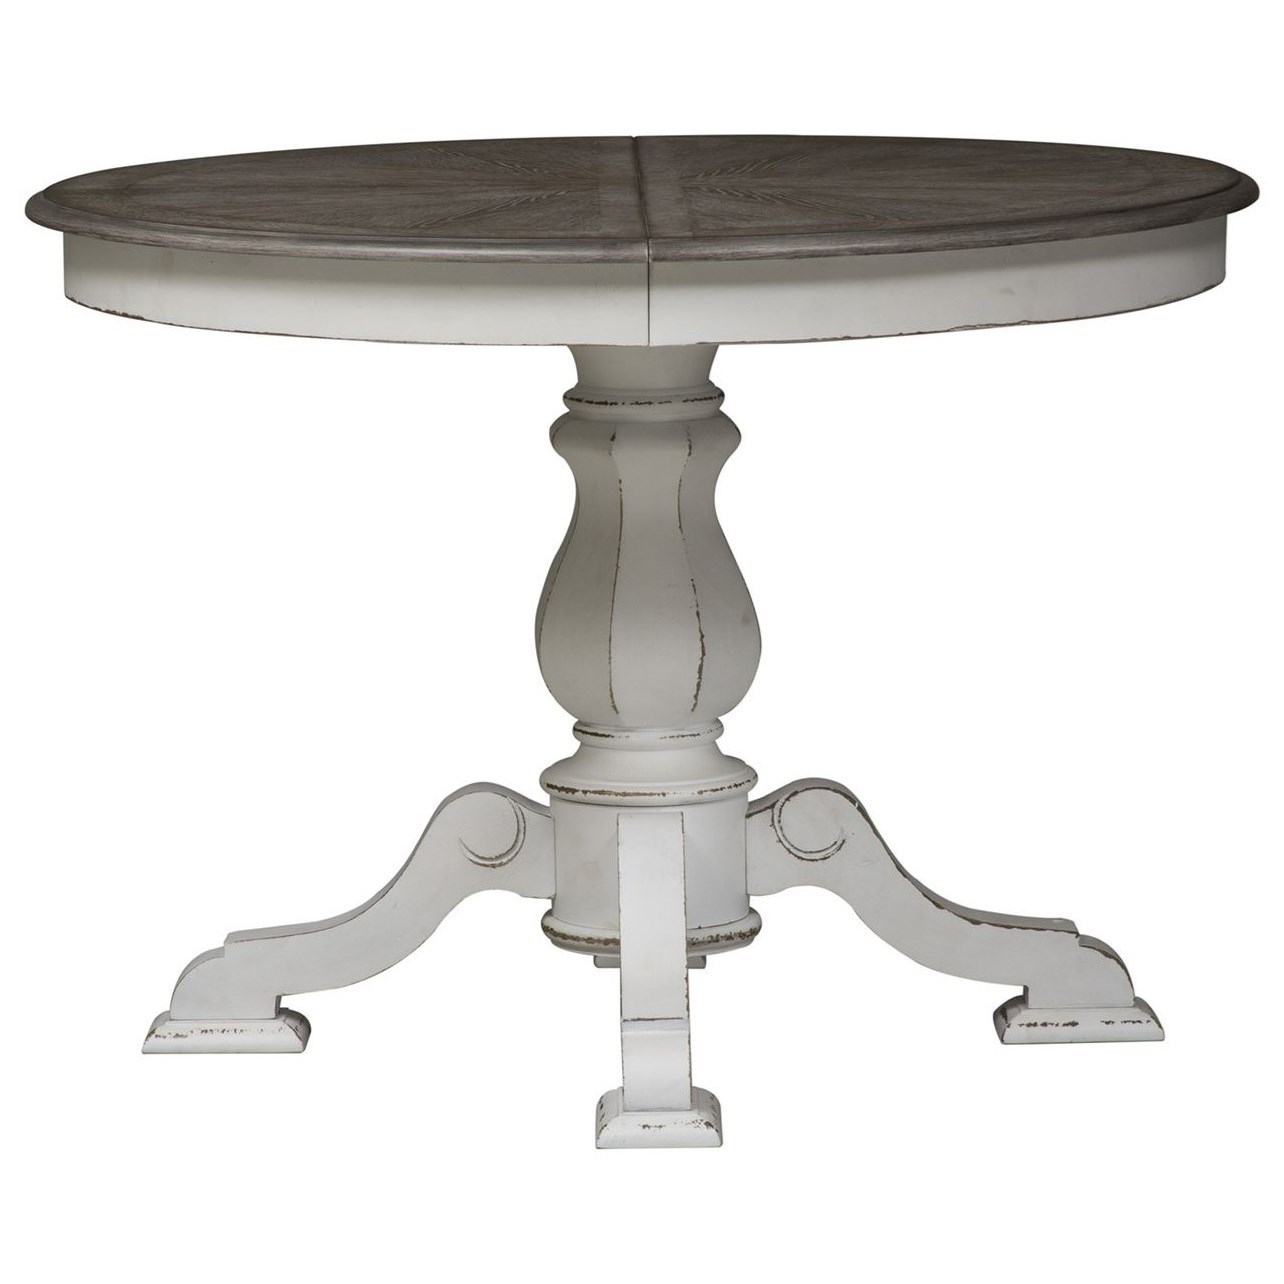 Magnolia Manor Dining Pedestal Table For Best And Newest Dawson Pedestal Tables (View 25 of 25)